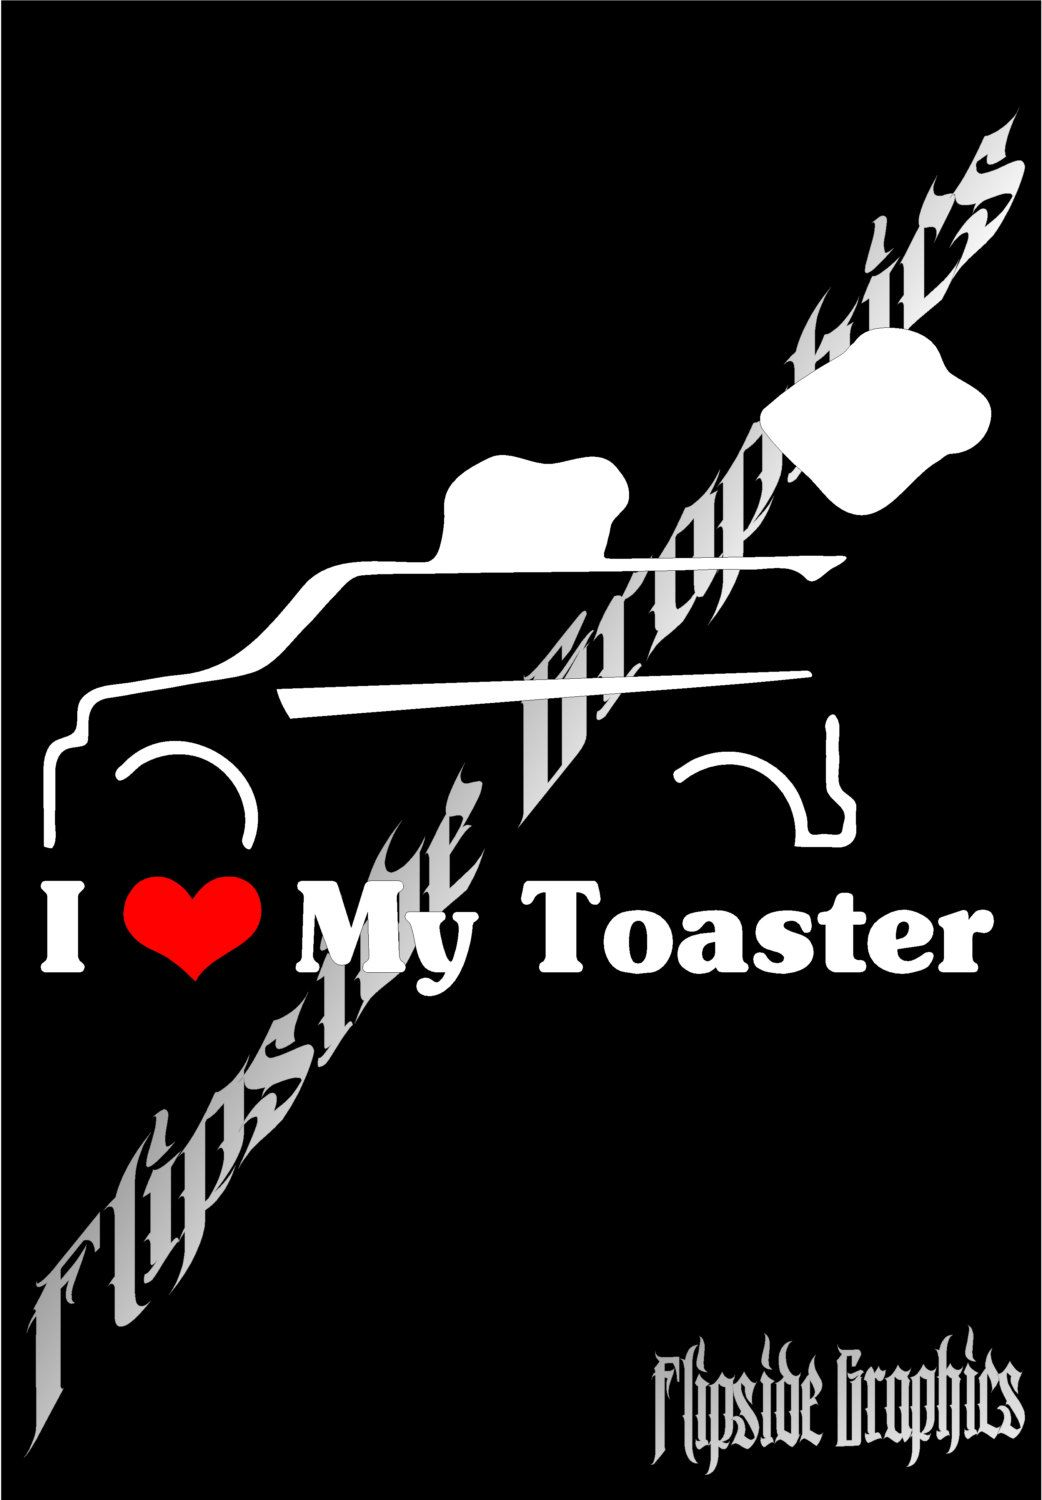 Funny scion xb toaster decal windows cars trucks tailgates laptop bumper stickers 2x 13 95 via shopseen